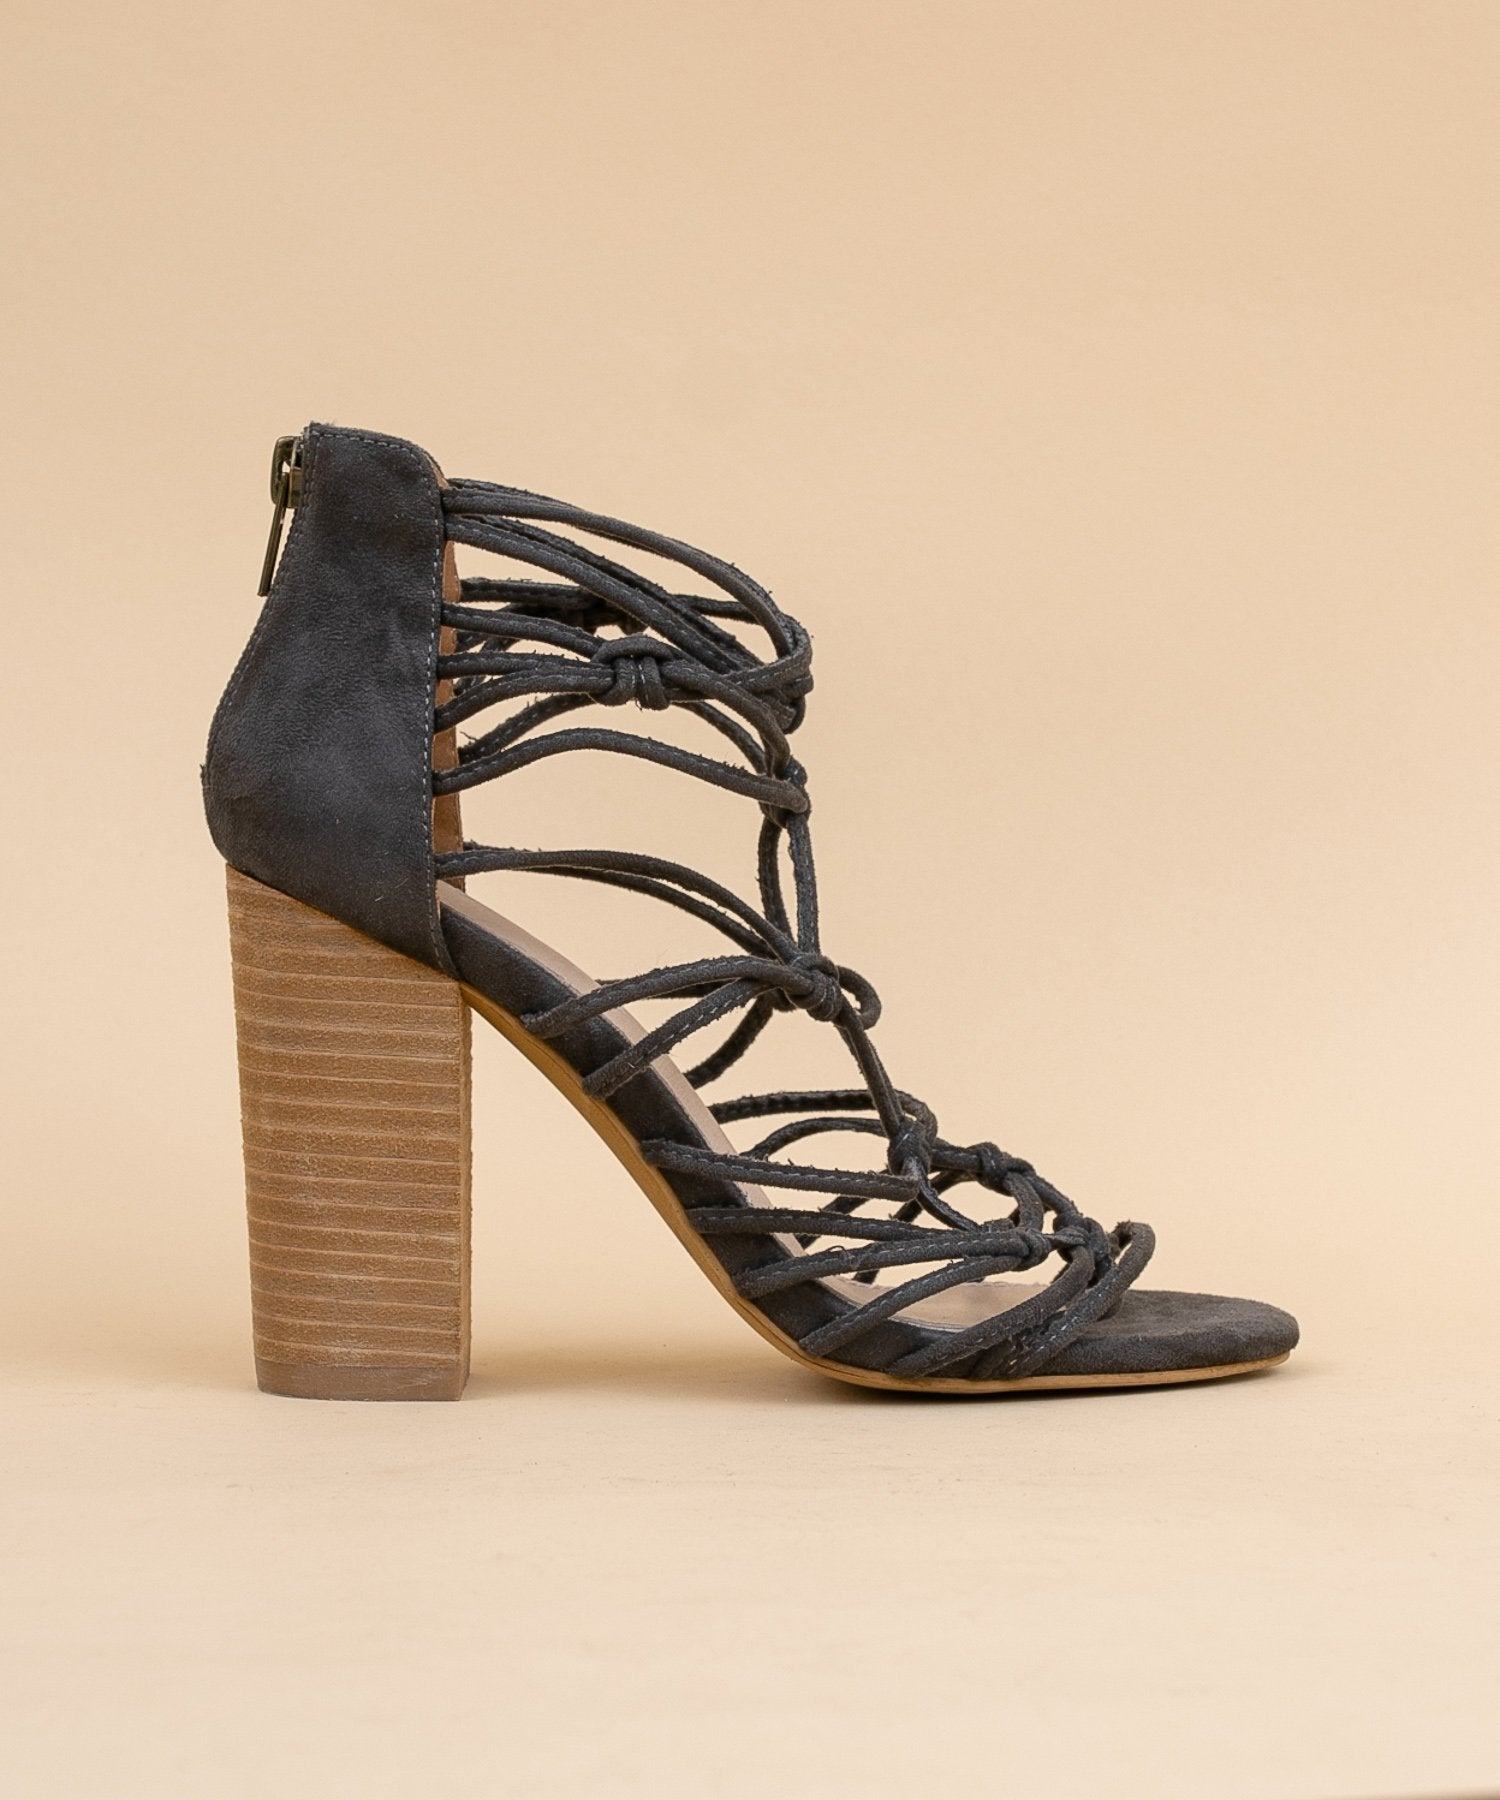 Clara Hand Knotted Strappy Heels in Dark Grey / FINAL SALE